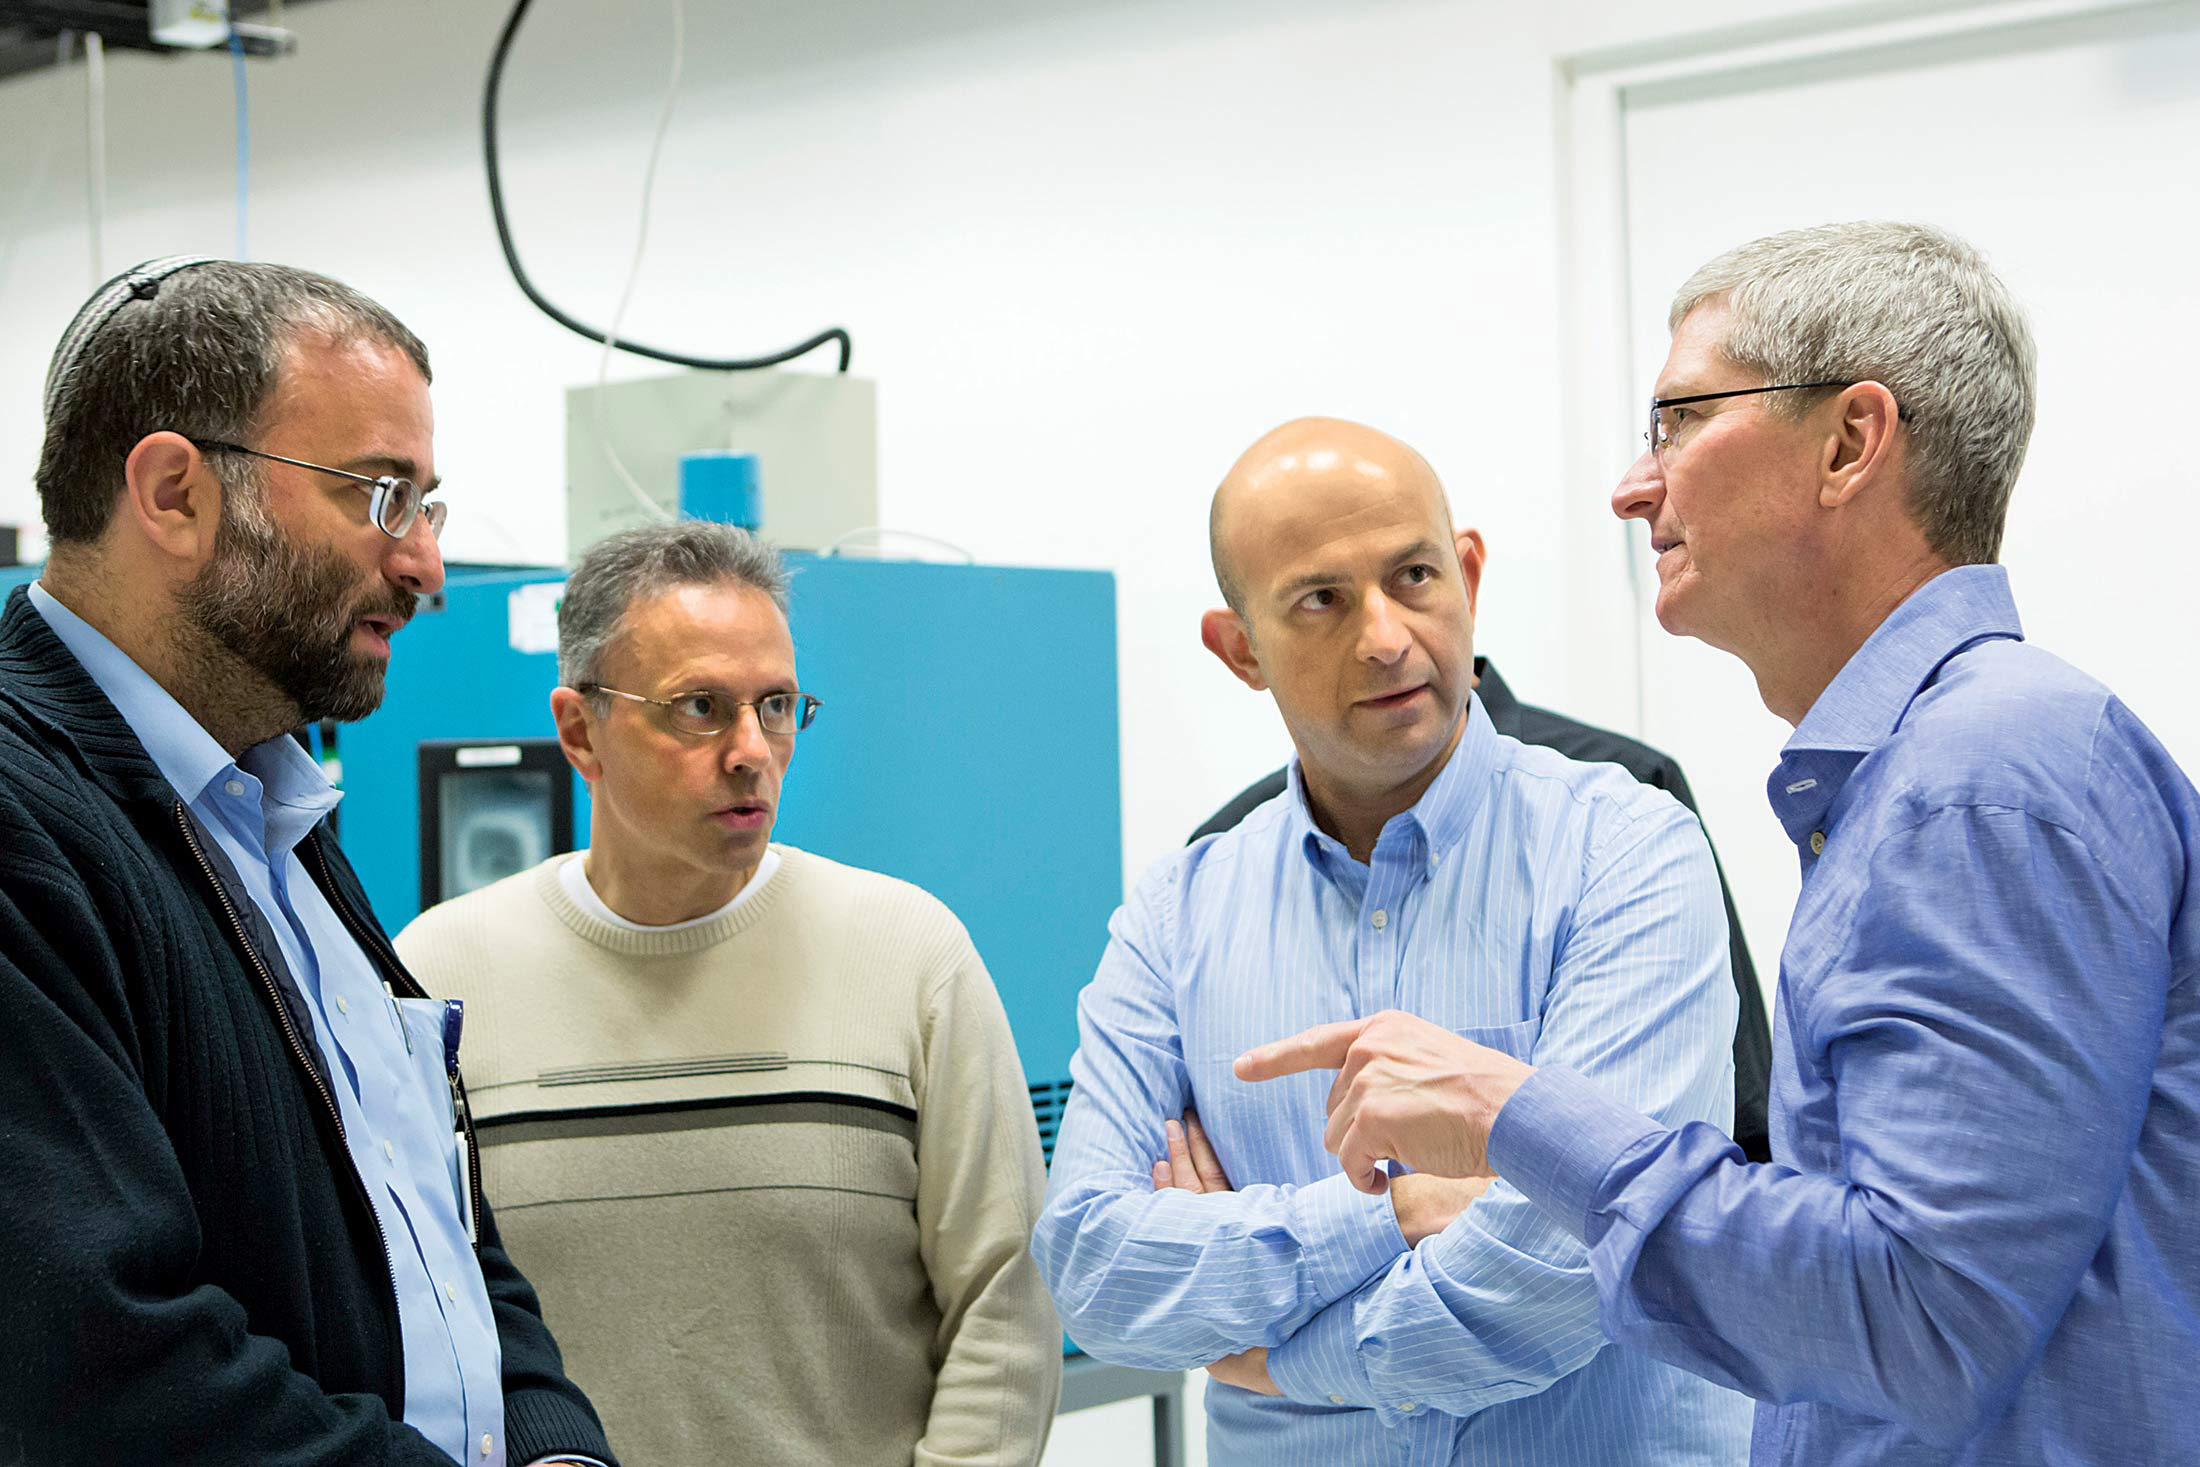 In Israel, Srouji (second from left) and Cook (right) with Apple employees